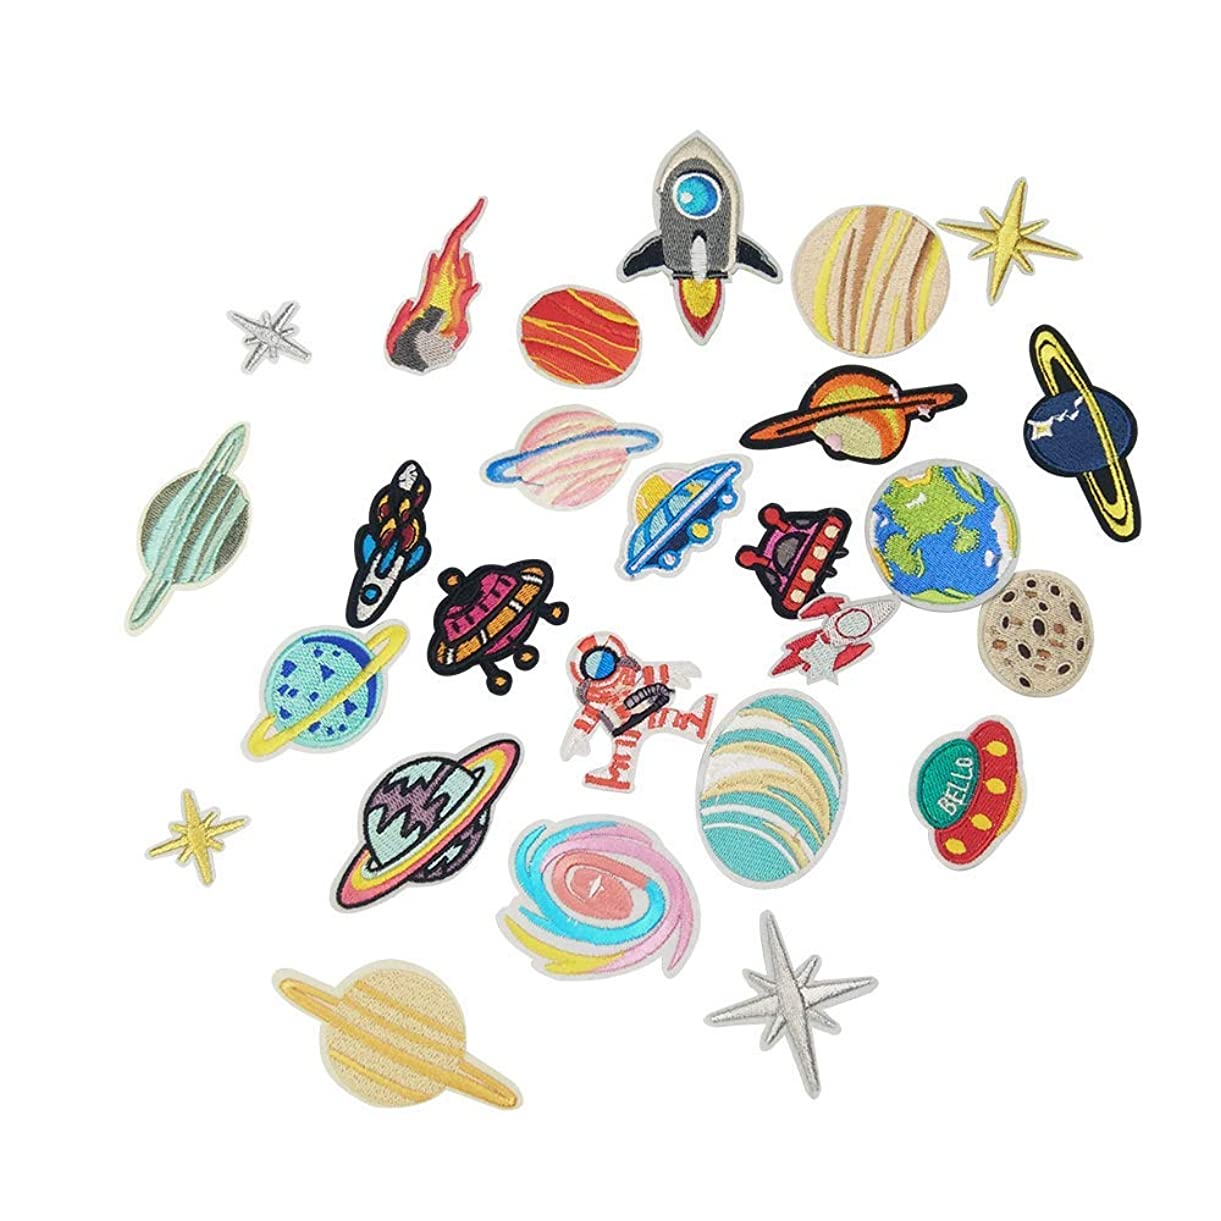 Iron on Patches 26 PCS Solar System DIY Sew Decoration Appliques Stickers for Clothing, Backpack, Caps, Repair The Hole Stick uvedr9218